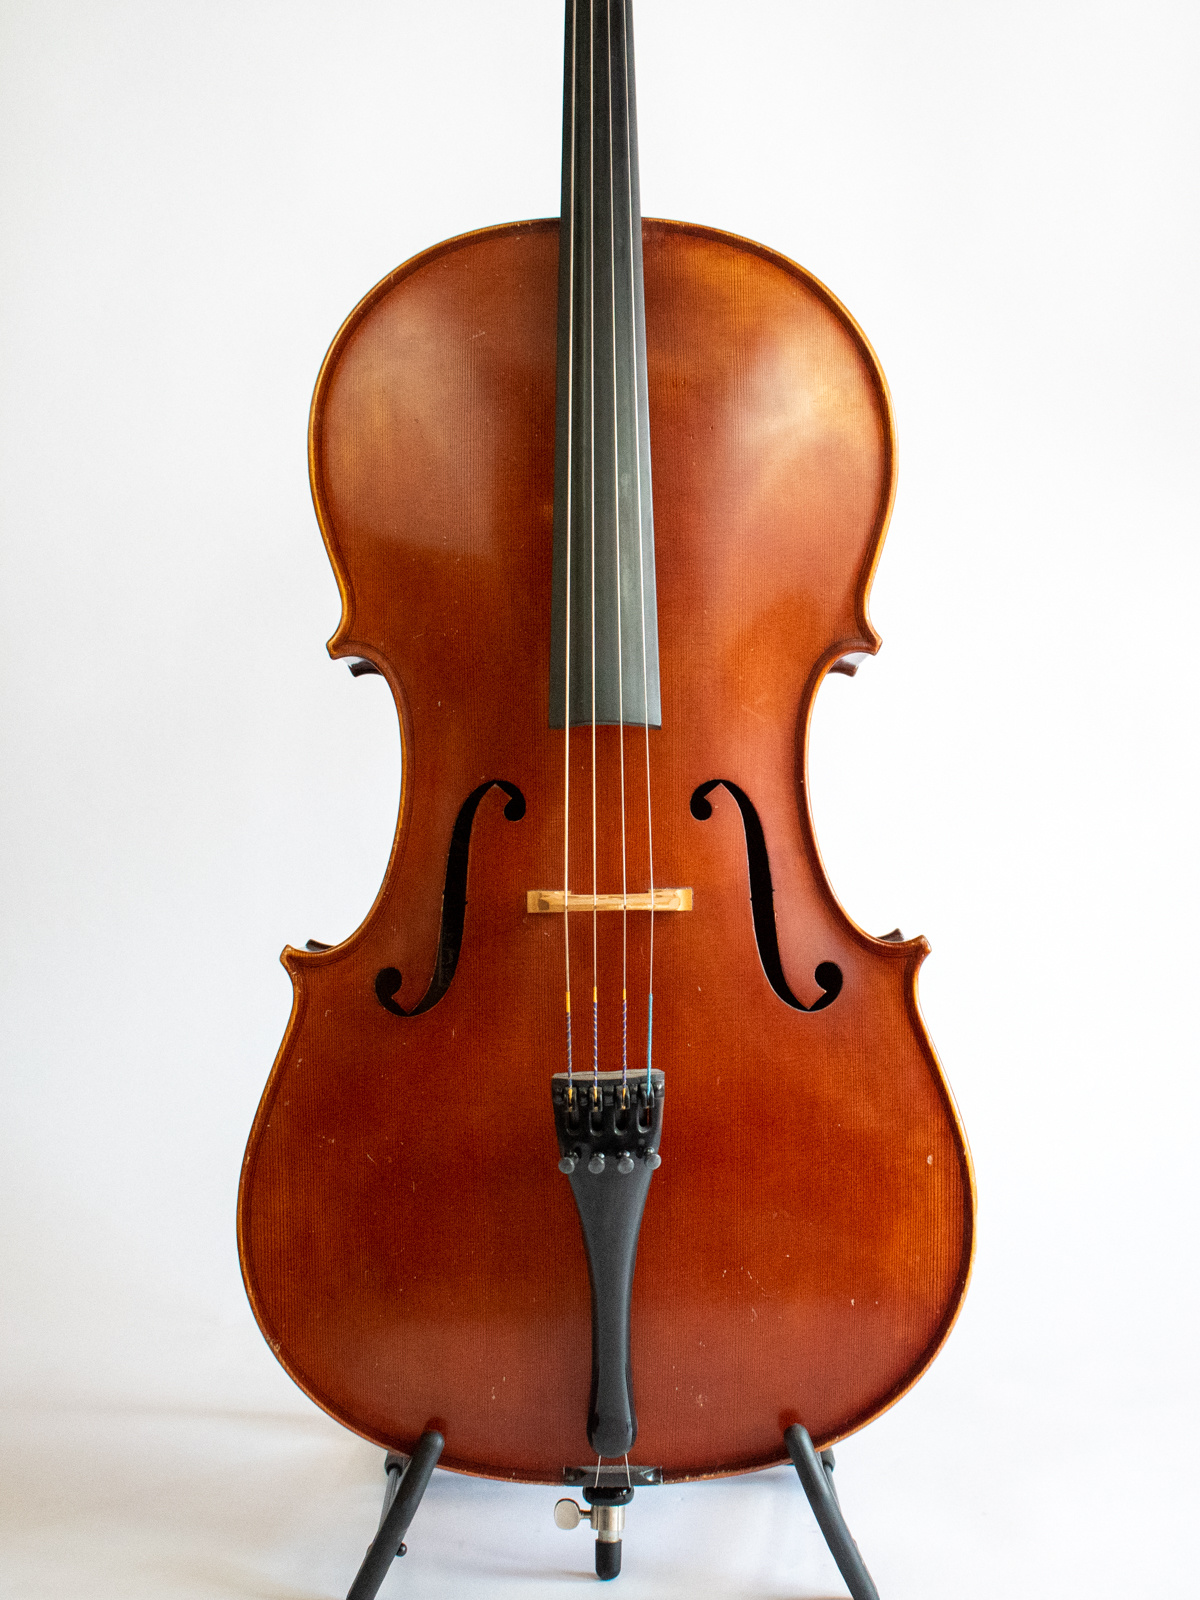 Spezial Illner Riedl SIR used 7/8 cello, 1998, Bubenreuth, Germany.